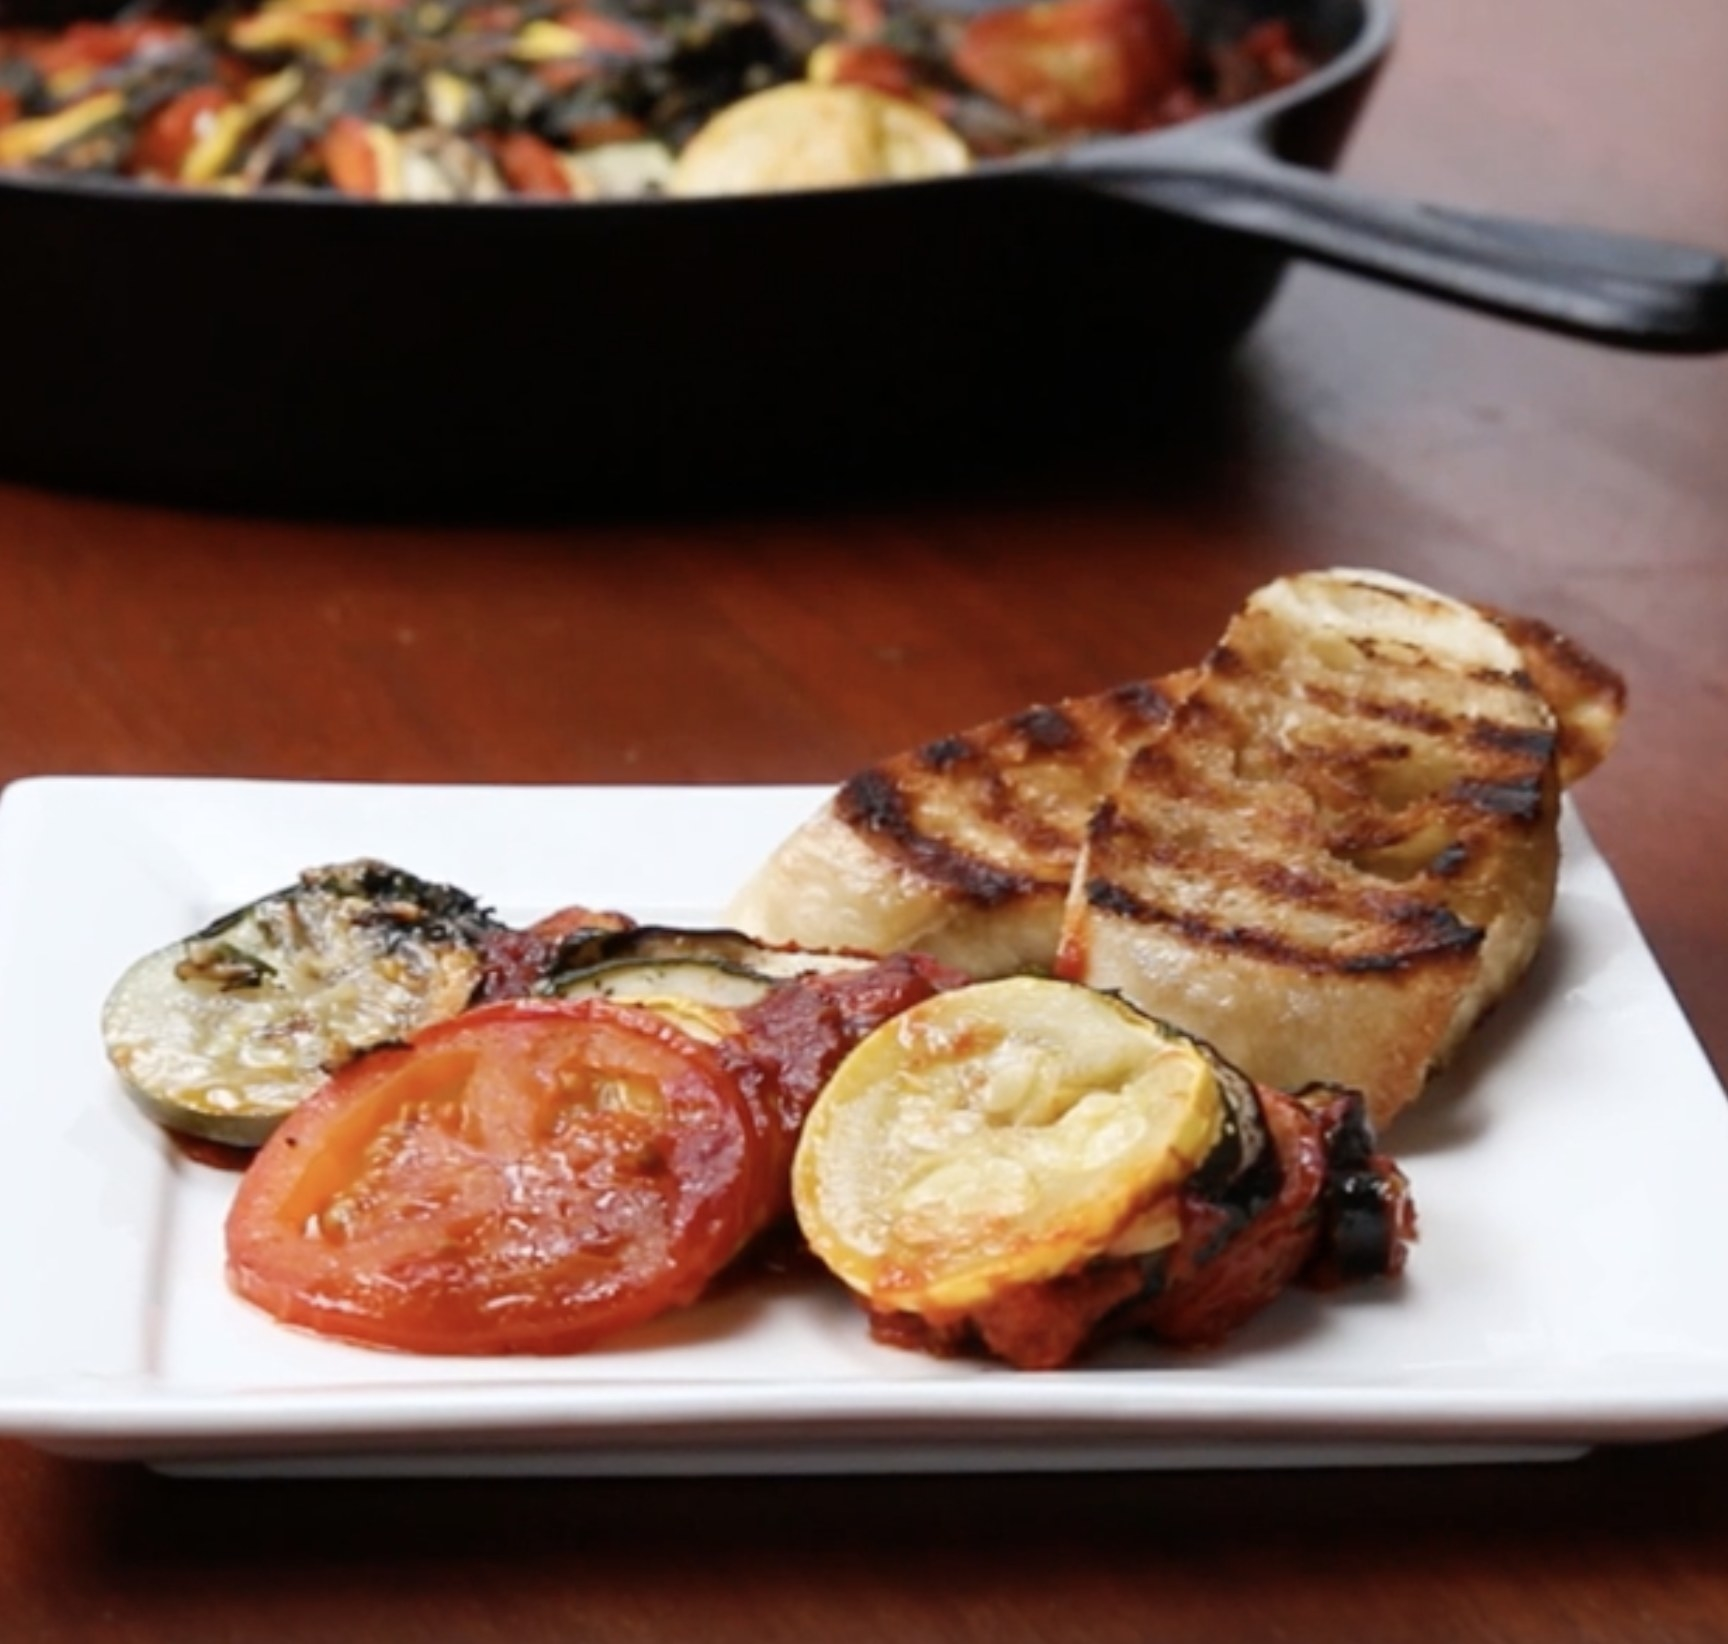 A dish of ratatouille with two slices of toasted french bread